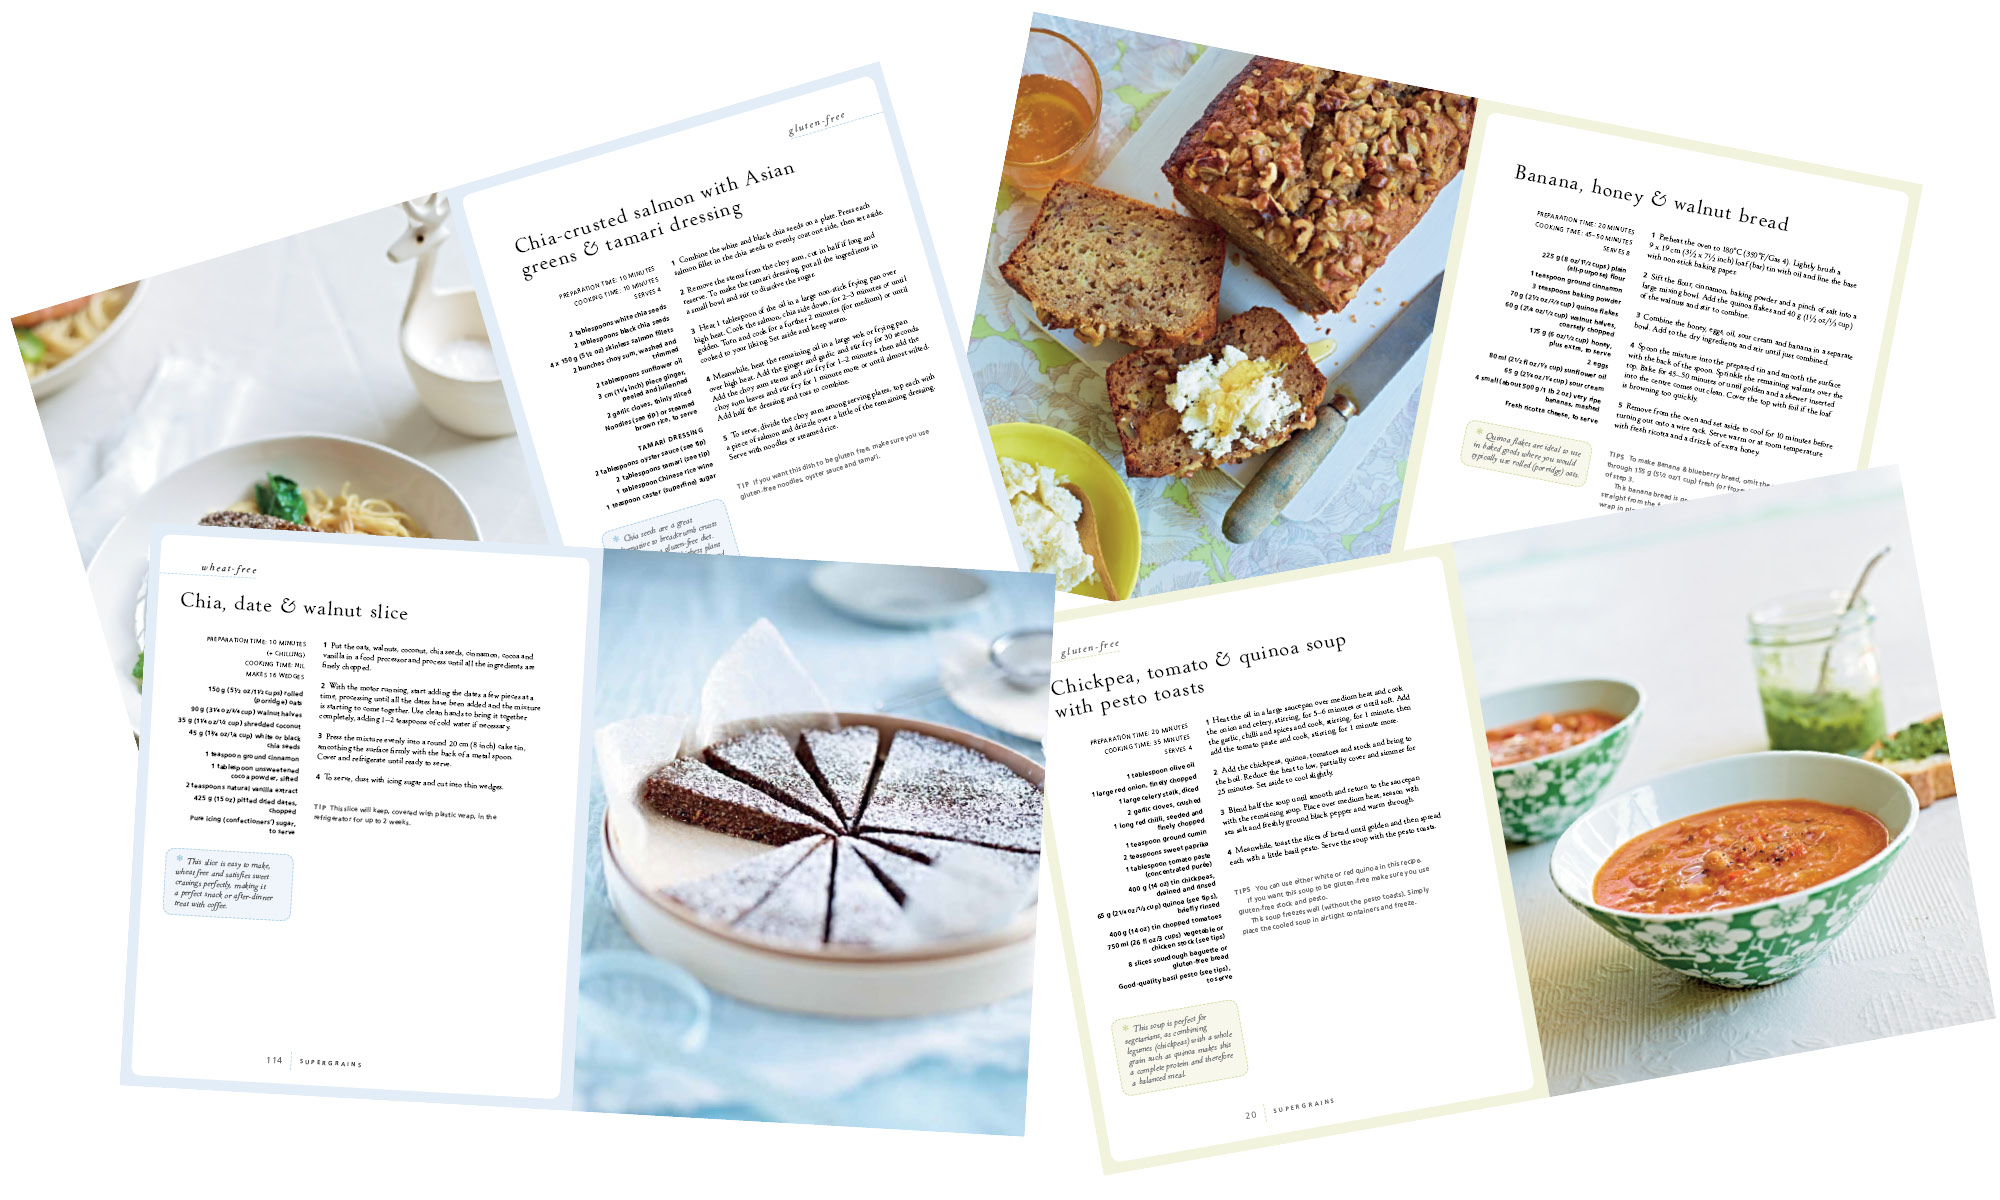 chrissy freer byron bay nutritionist food writer and health expert chrissy freer supergrains book